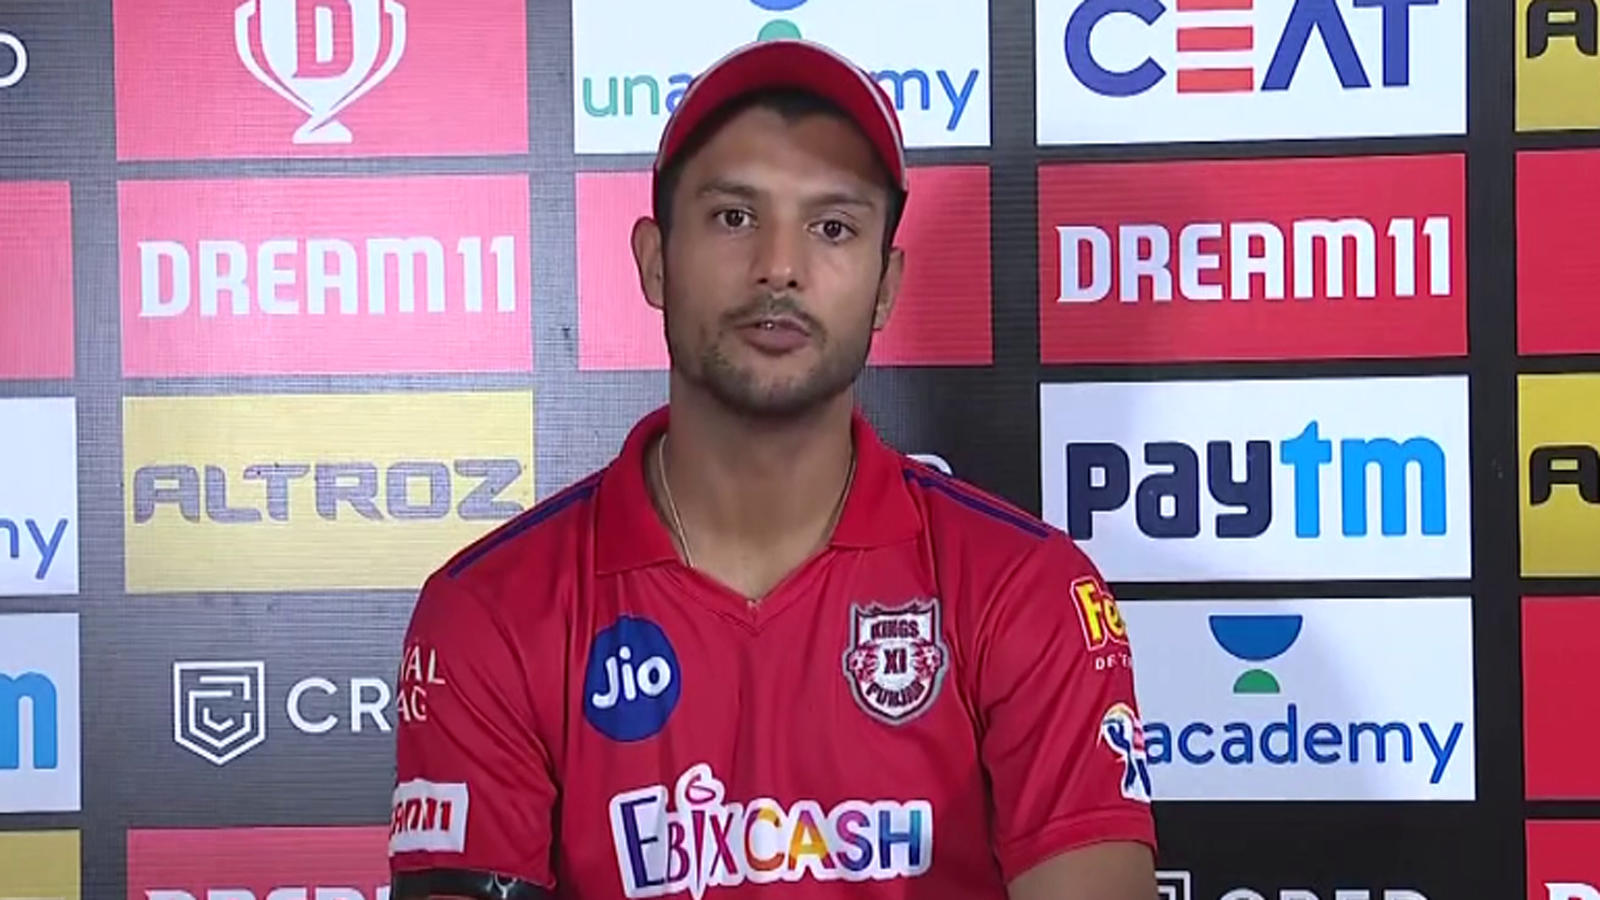 ipl-fun-to-bat-with-kl-rahul-we-share-good-friendship-on-field-says-mayank-agarwal